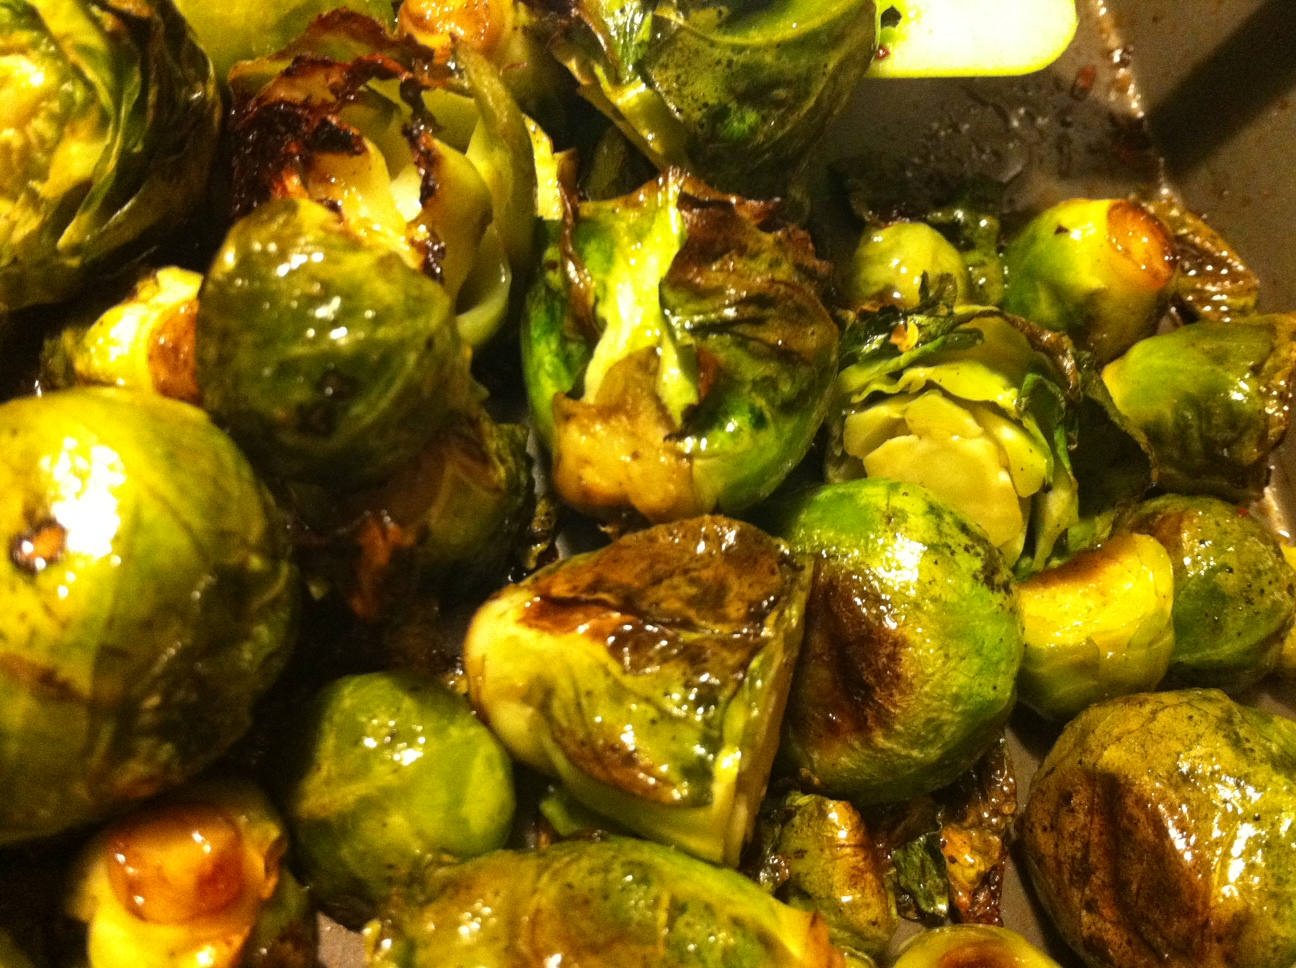 dijon braised dijon braised brussels sprouts dijon braised brussels ...